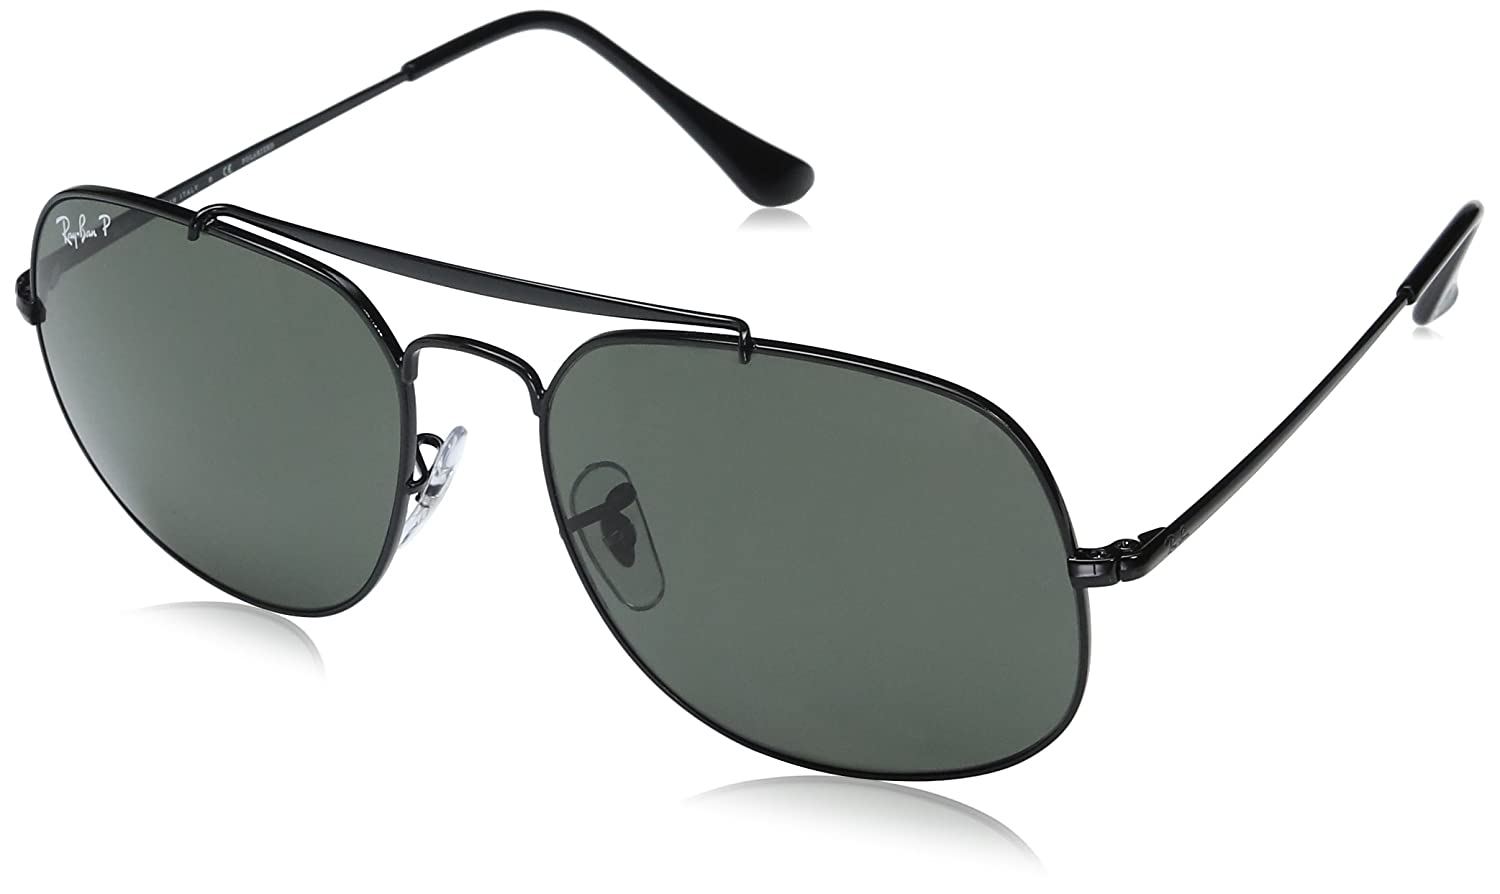 108ed15d761 Amazon.com  Ray-Ban Men s Steel Man Sunglass Polarized Square